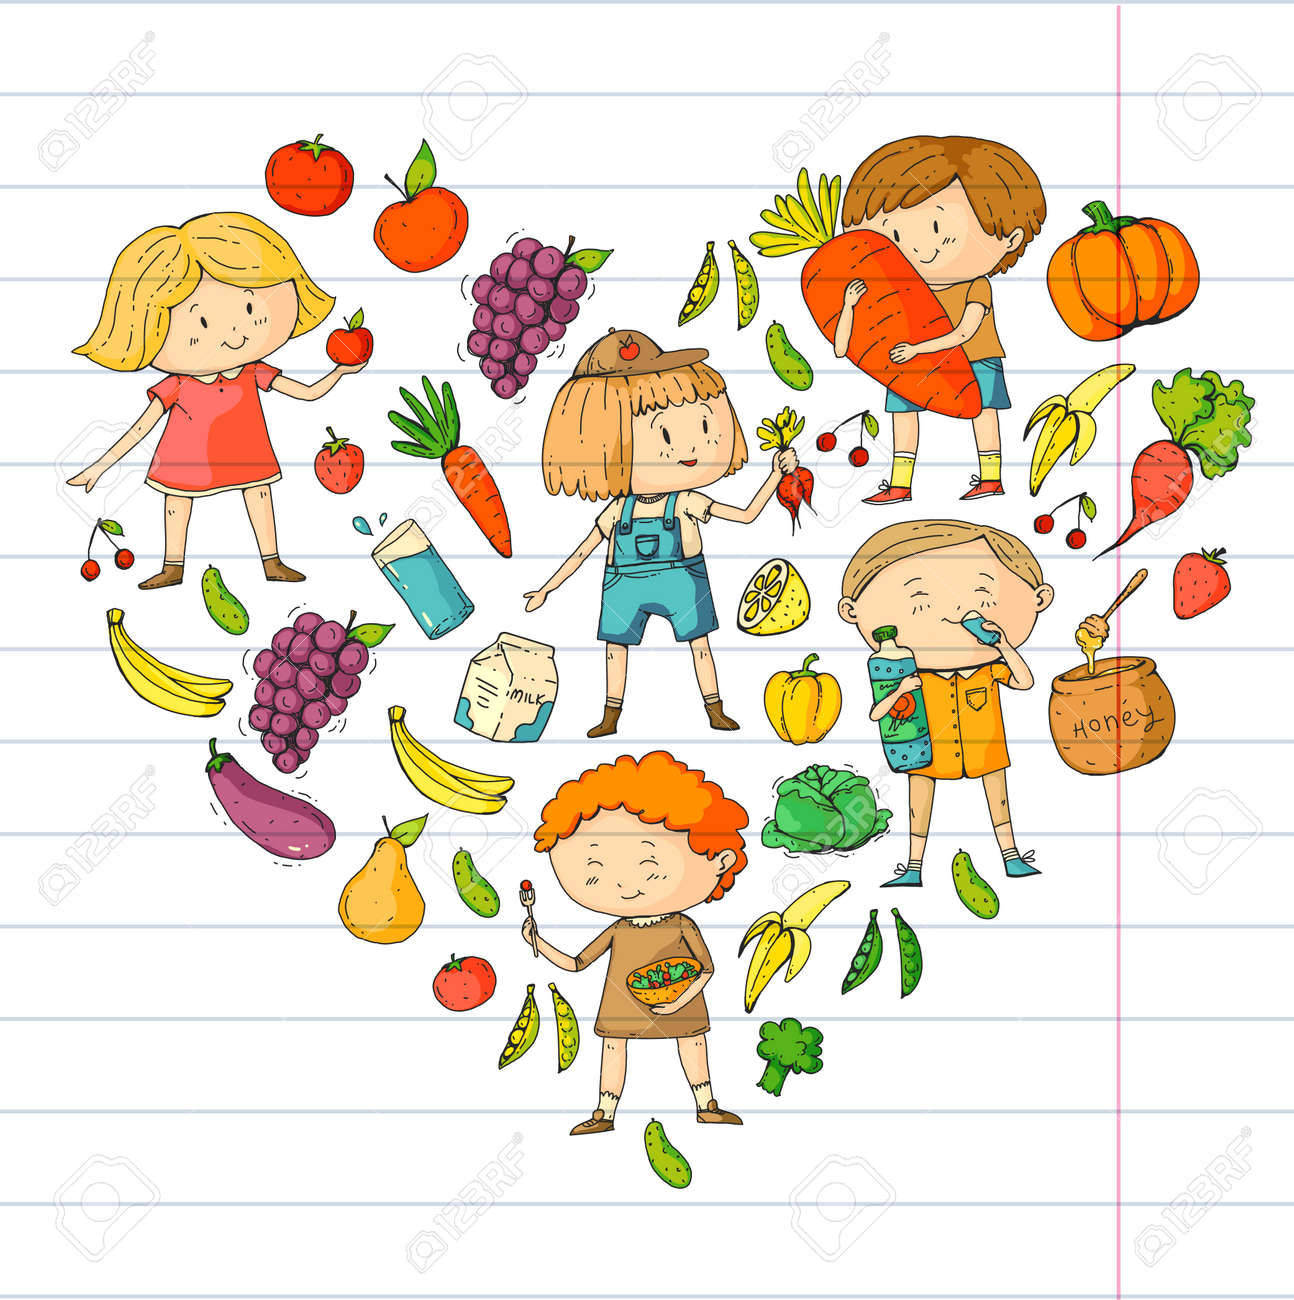 Children School And Kindergarten Healthy Food And Drinks Kids Royalty Free Cliparts Vectors And Stock Illustration Image 94782007